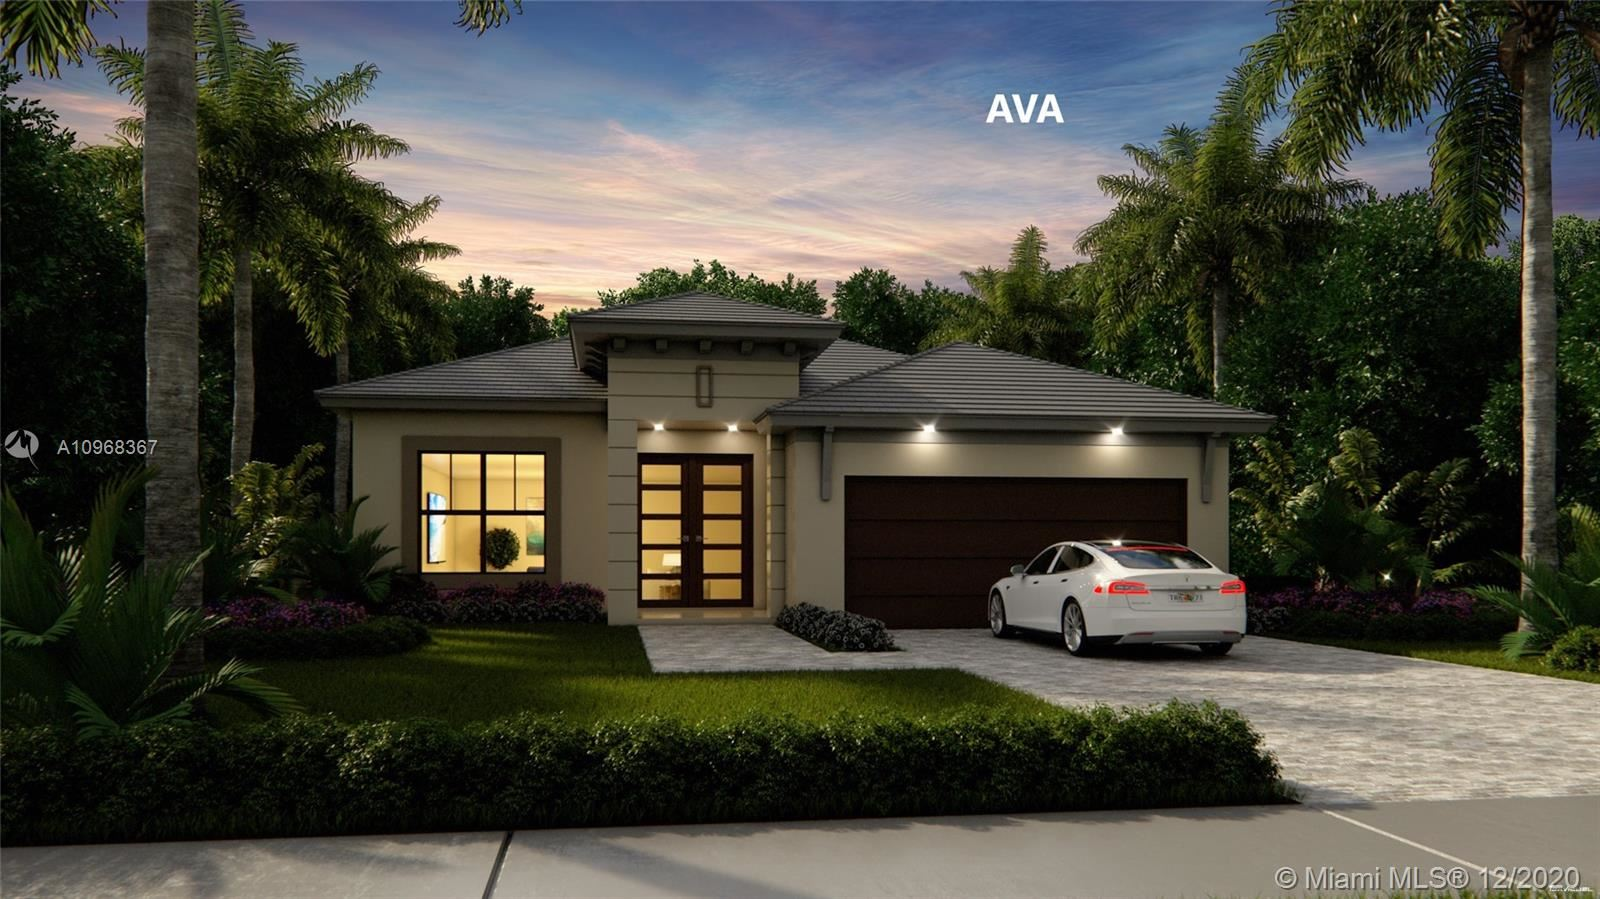 29137 SW 165 Ave, Homestead, FL 33030 - #: A10968367